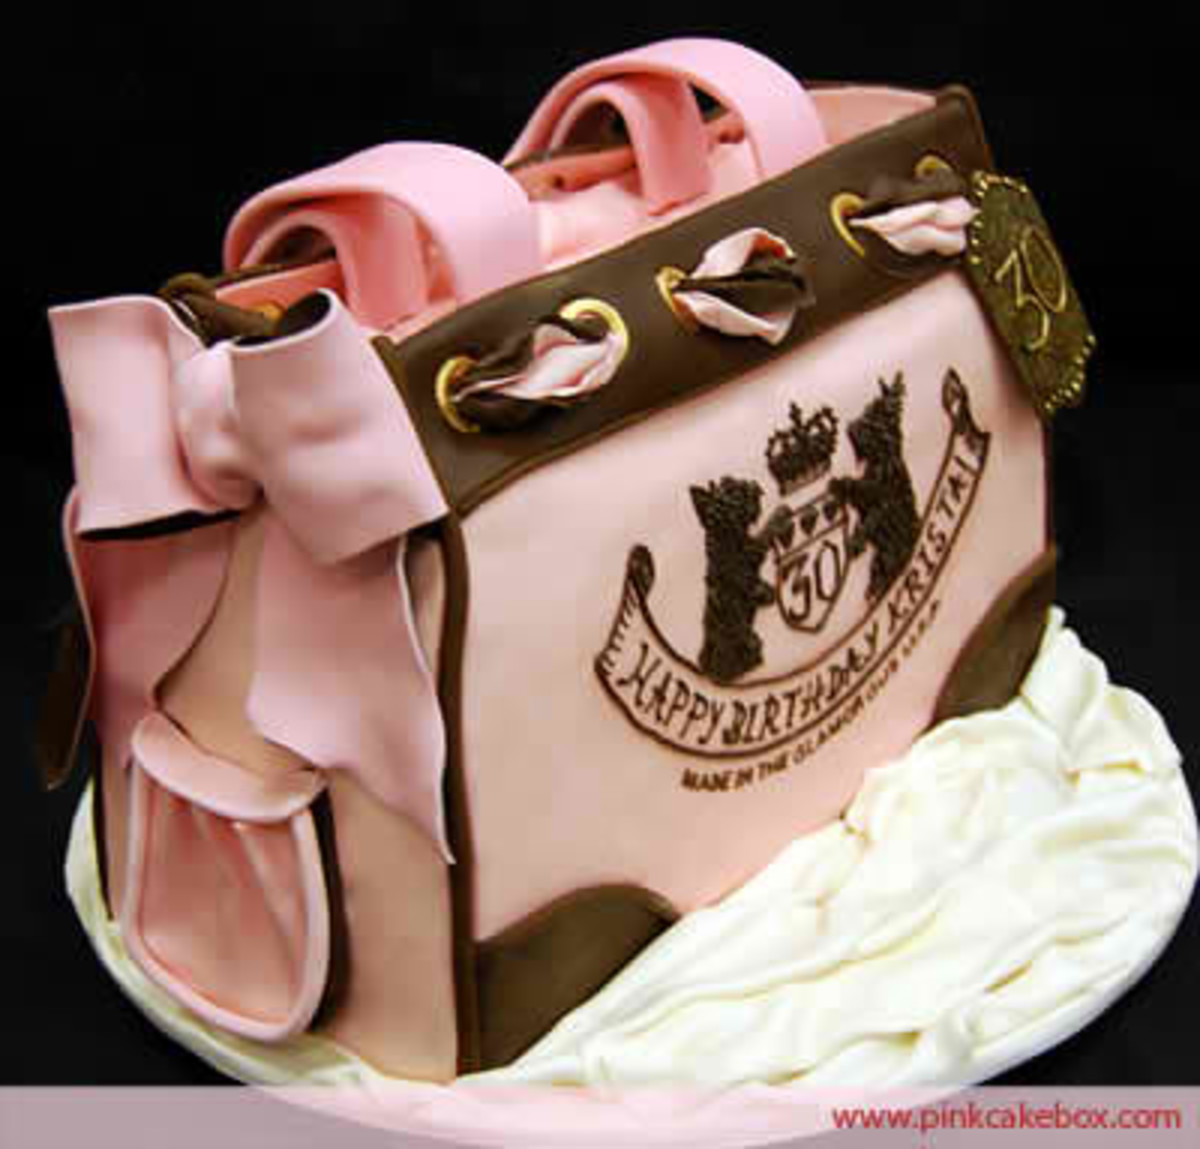 This juicy couture purse cake is definitely a great inspiration towards my next handbag.